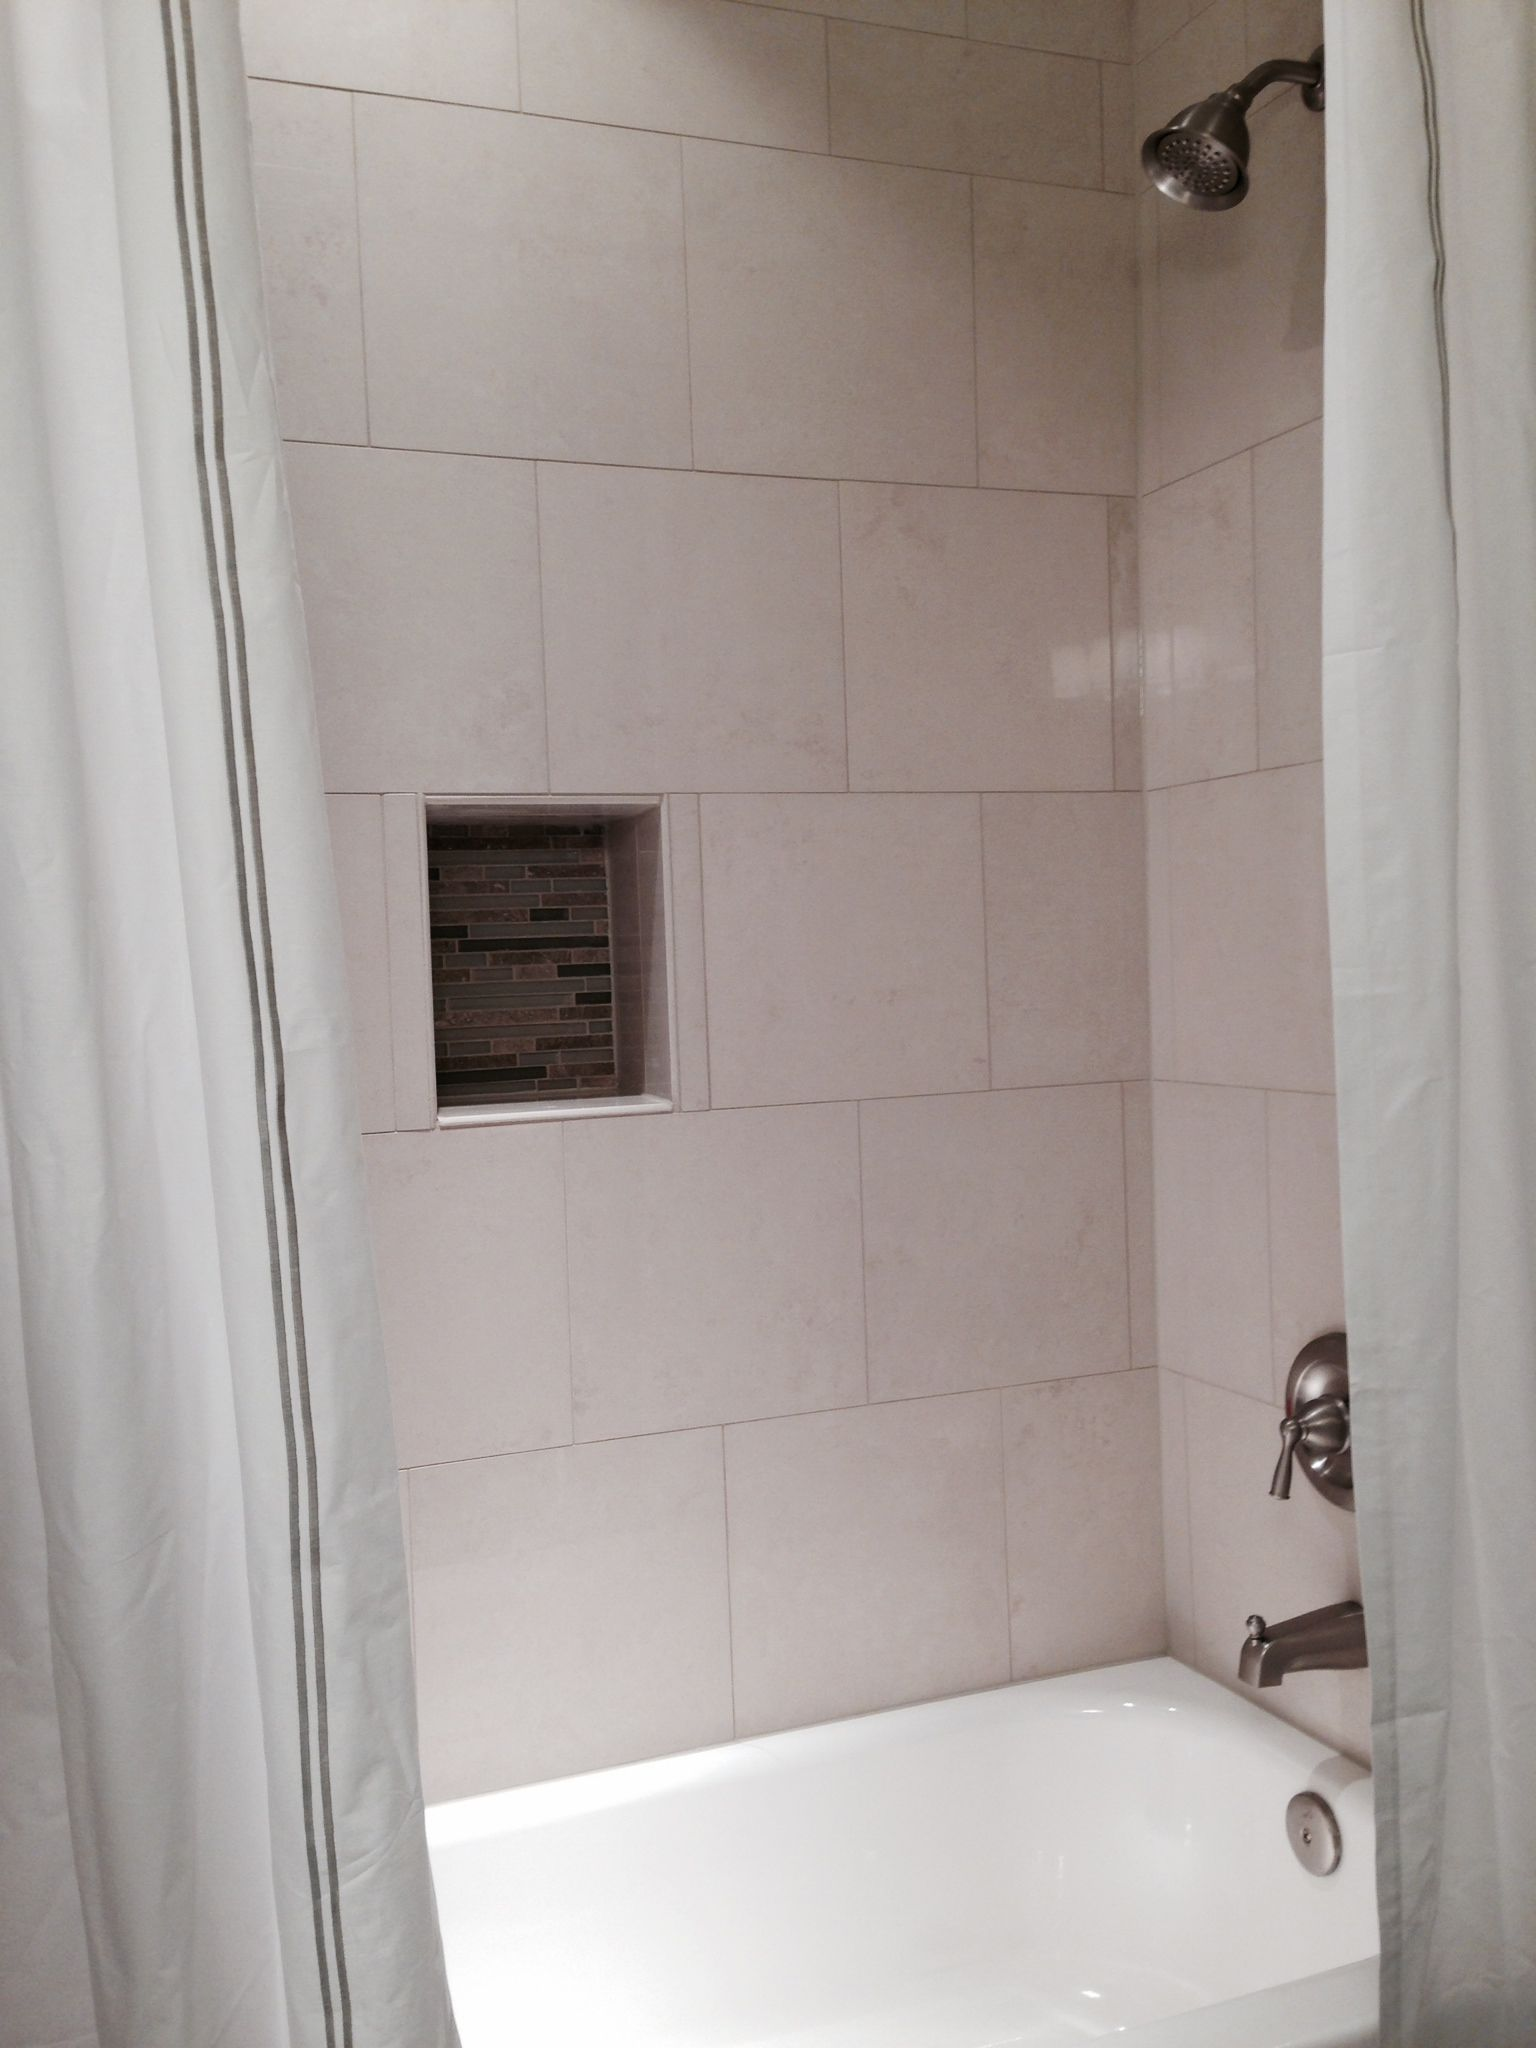 Photos of bathroom in finished basement in fairfax va for Bathroom remodel 3000